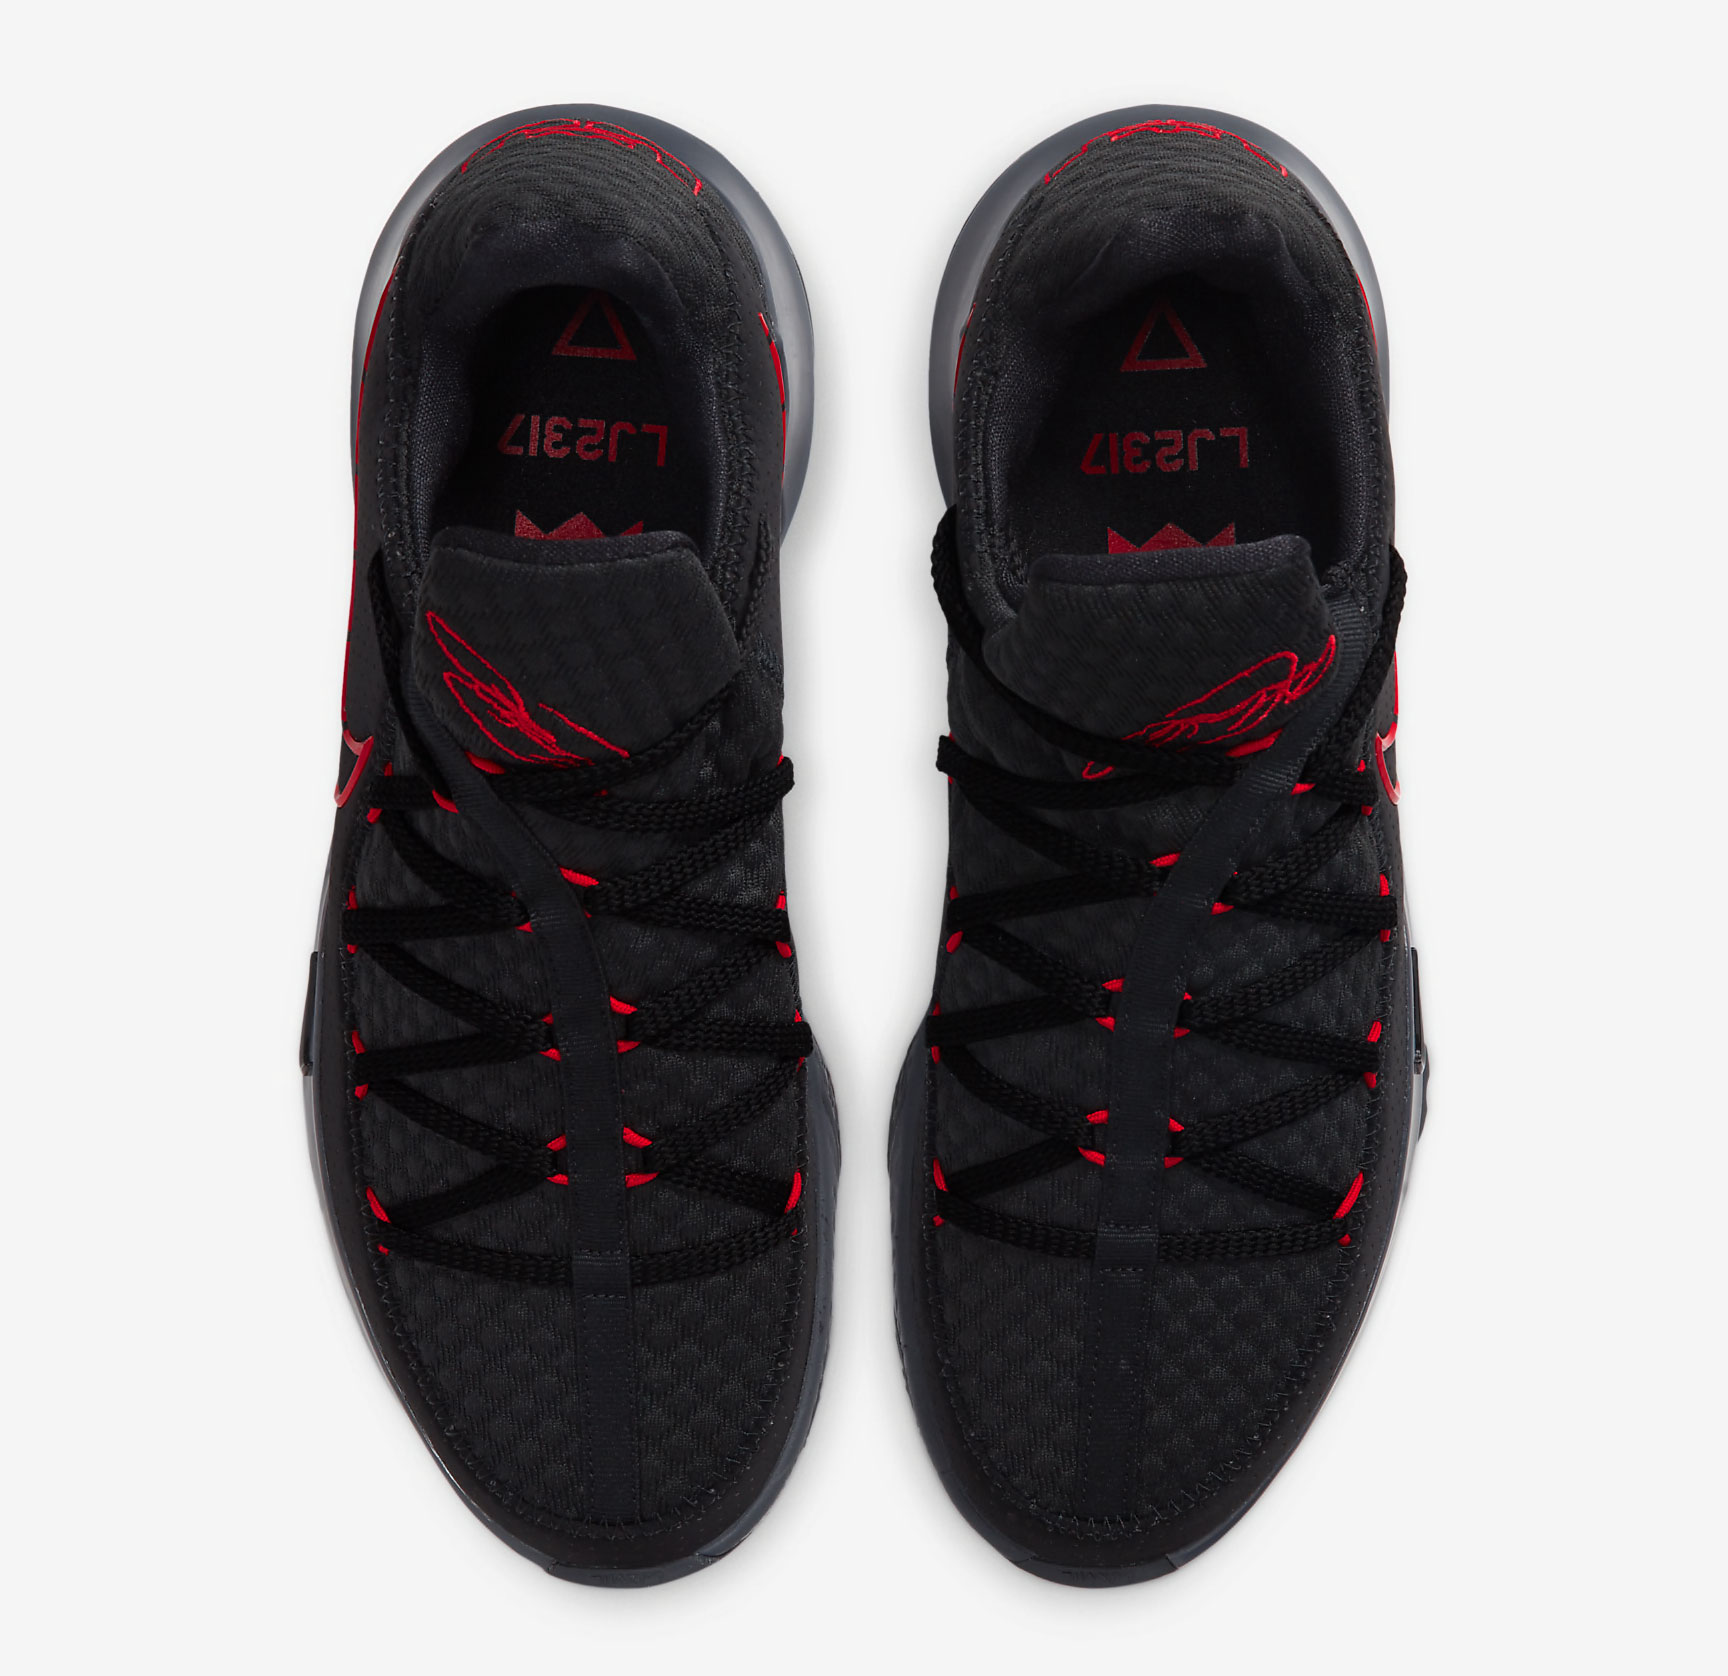 nike-lebron-17-low-bred-release-date-price-4